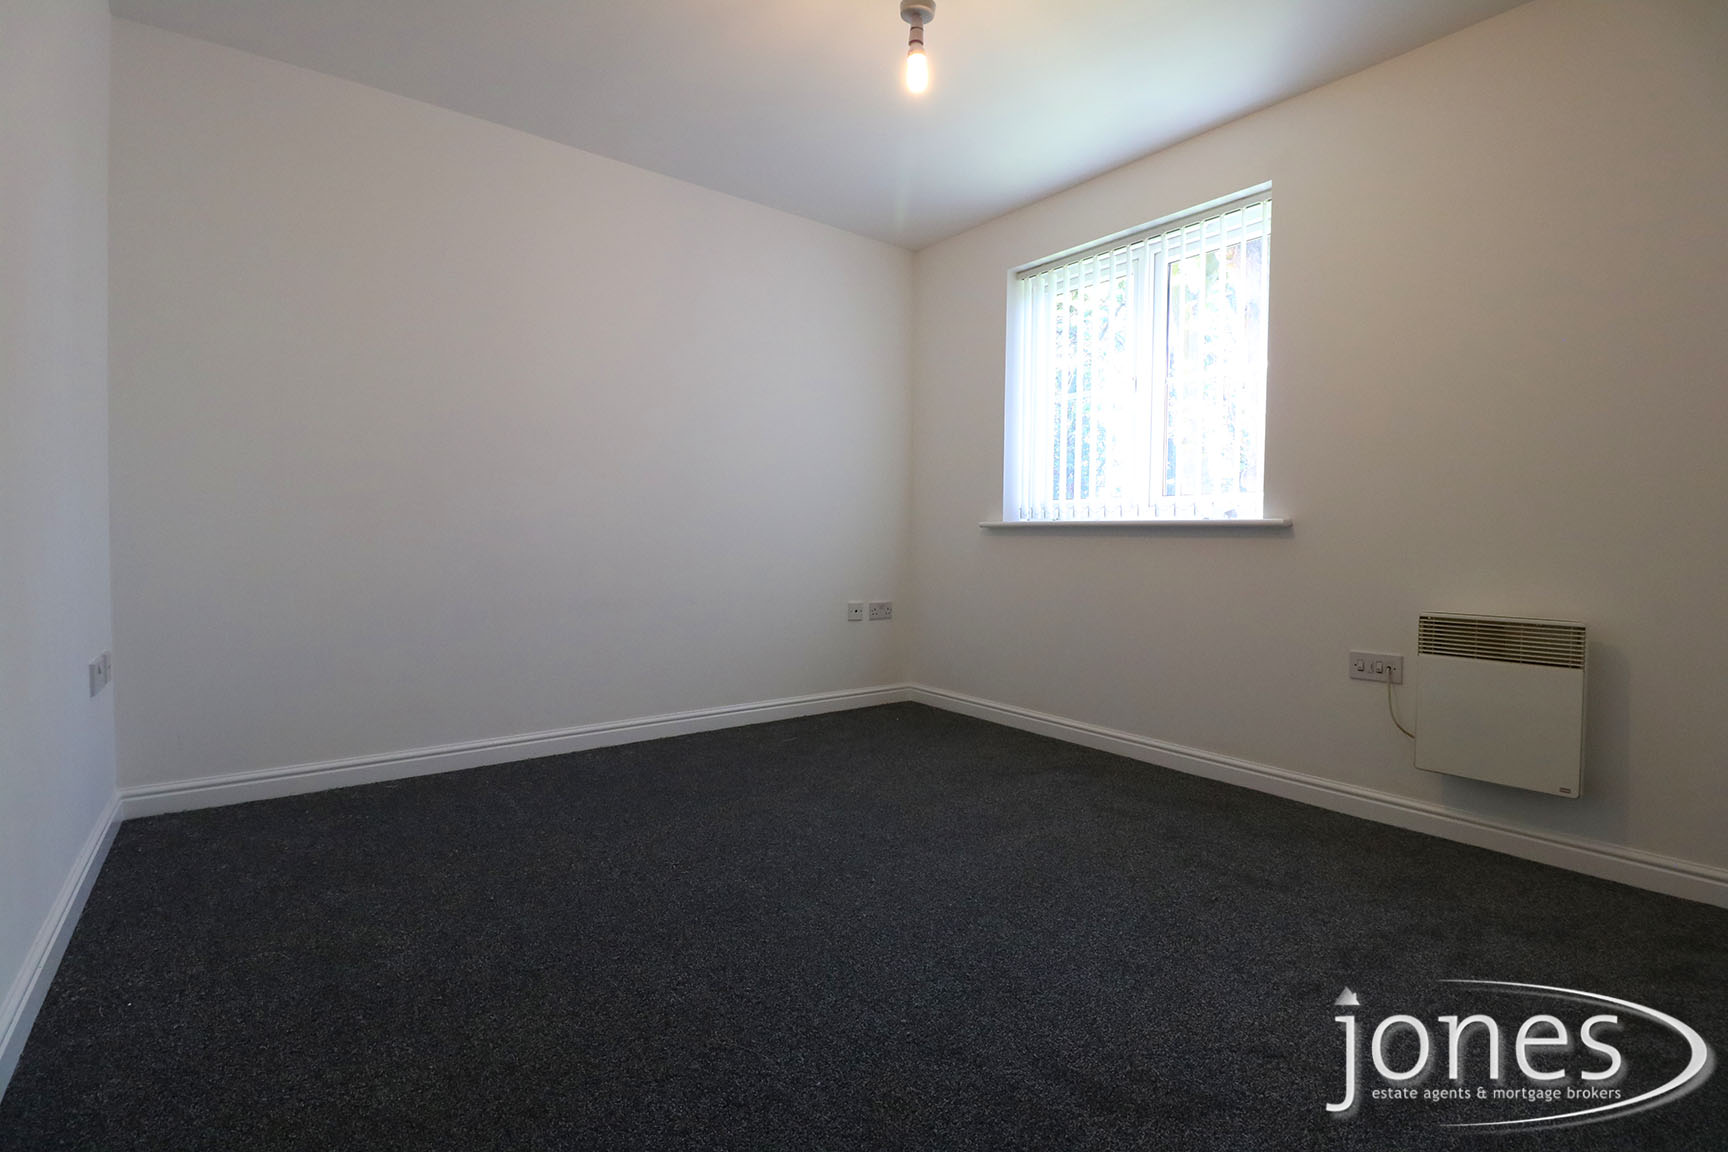 Home for Sale Let - Photo 05 Earls Court, Norton, Stockton on Tees TS20 2NP